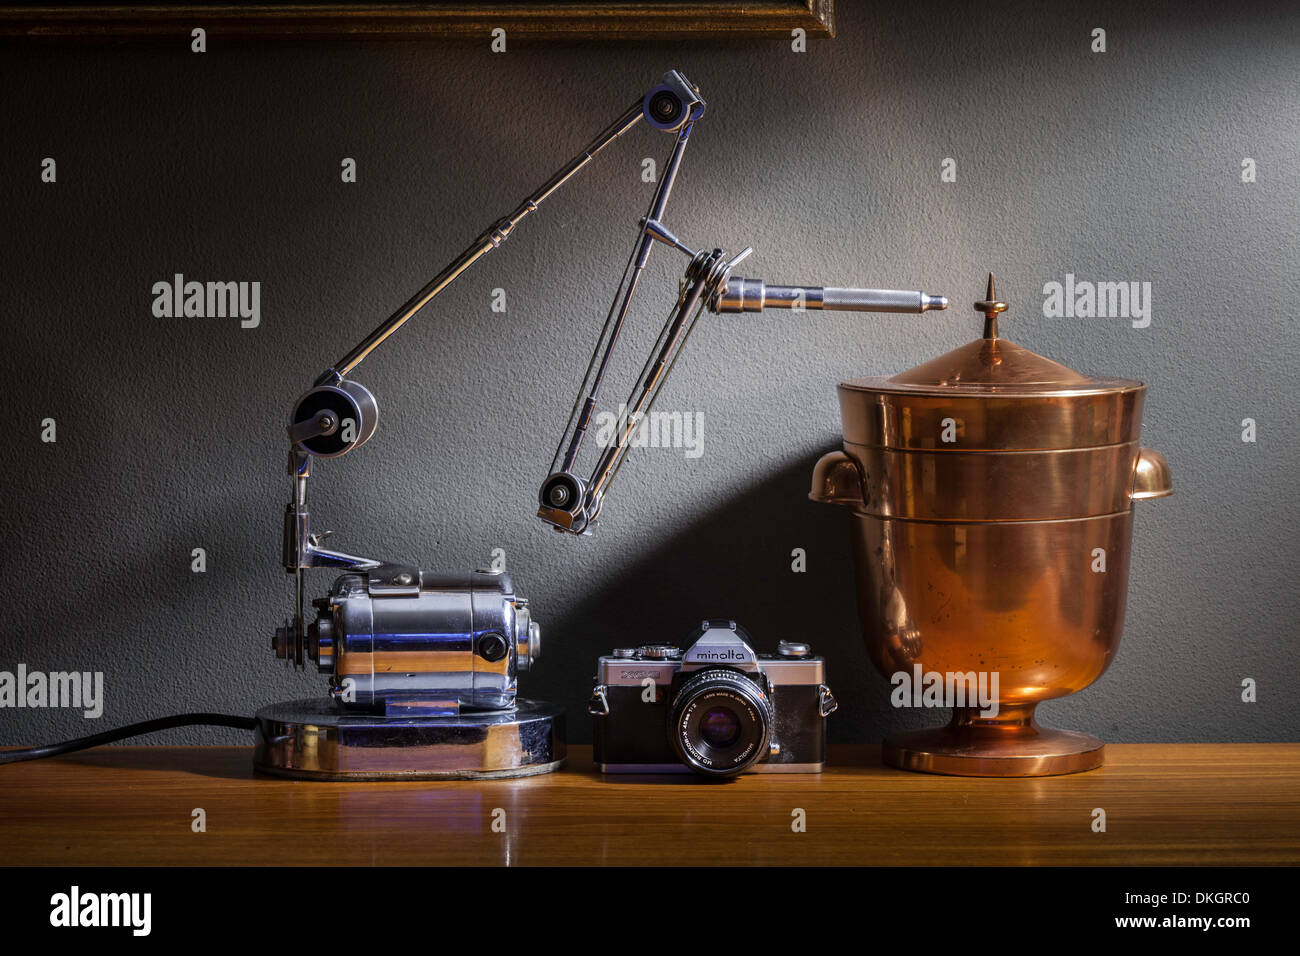 Dutch style still life with vintage objects - Stock Image